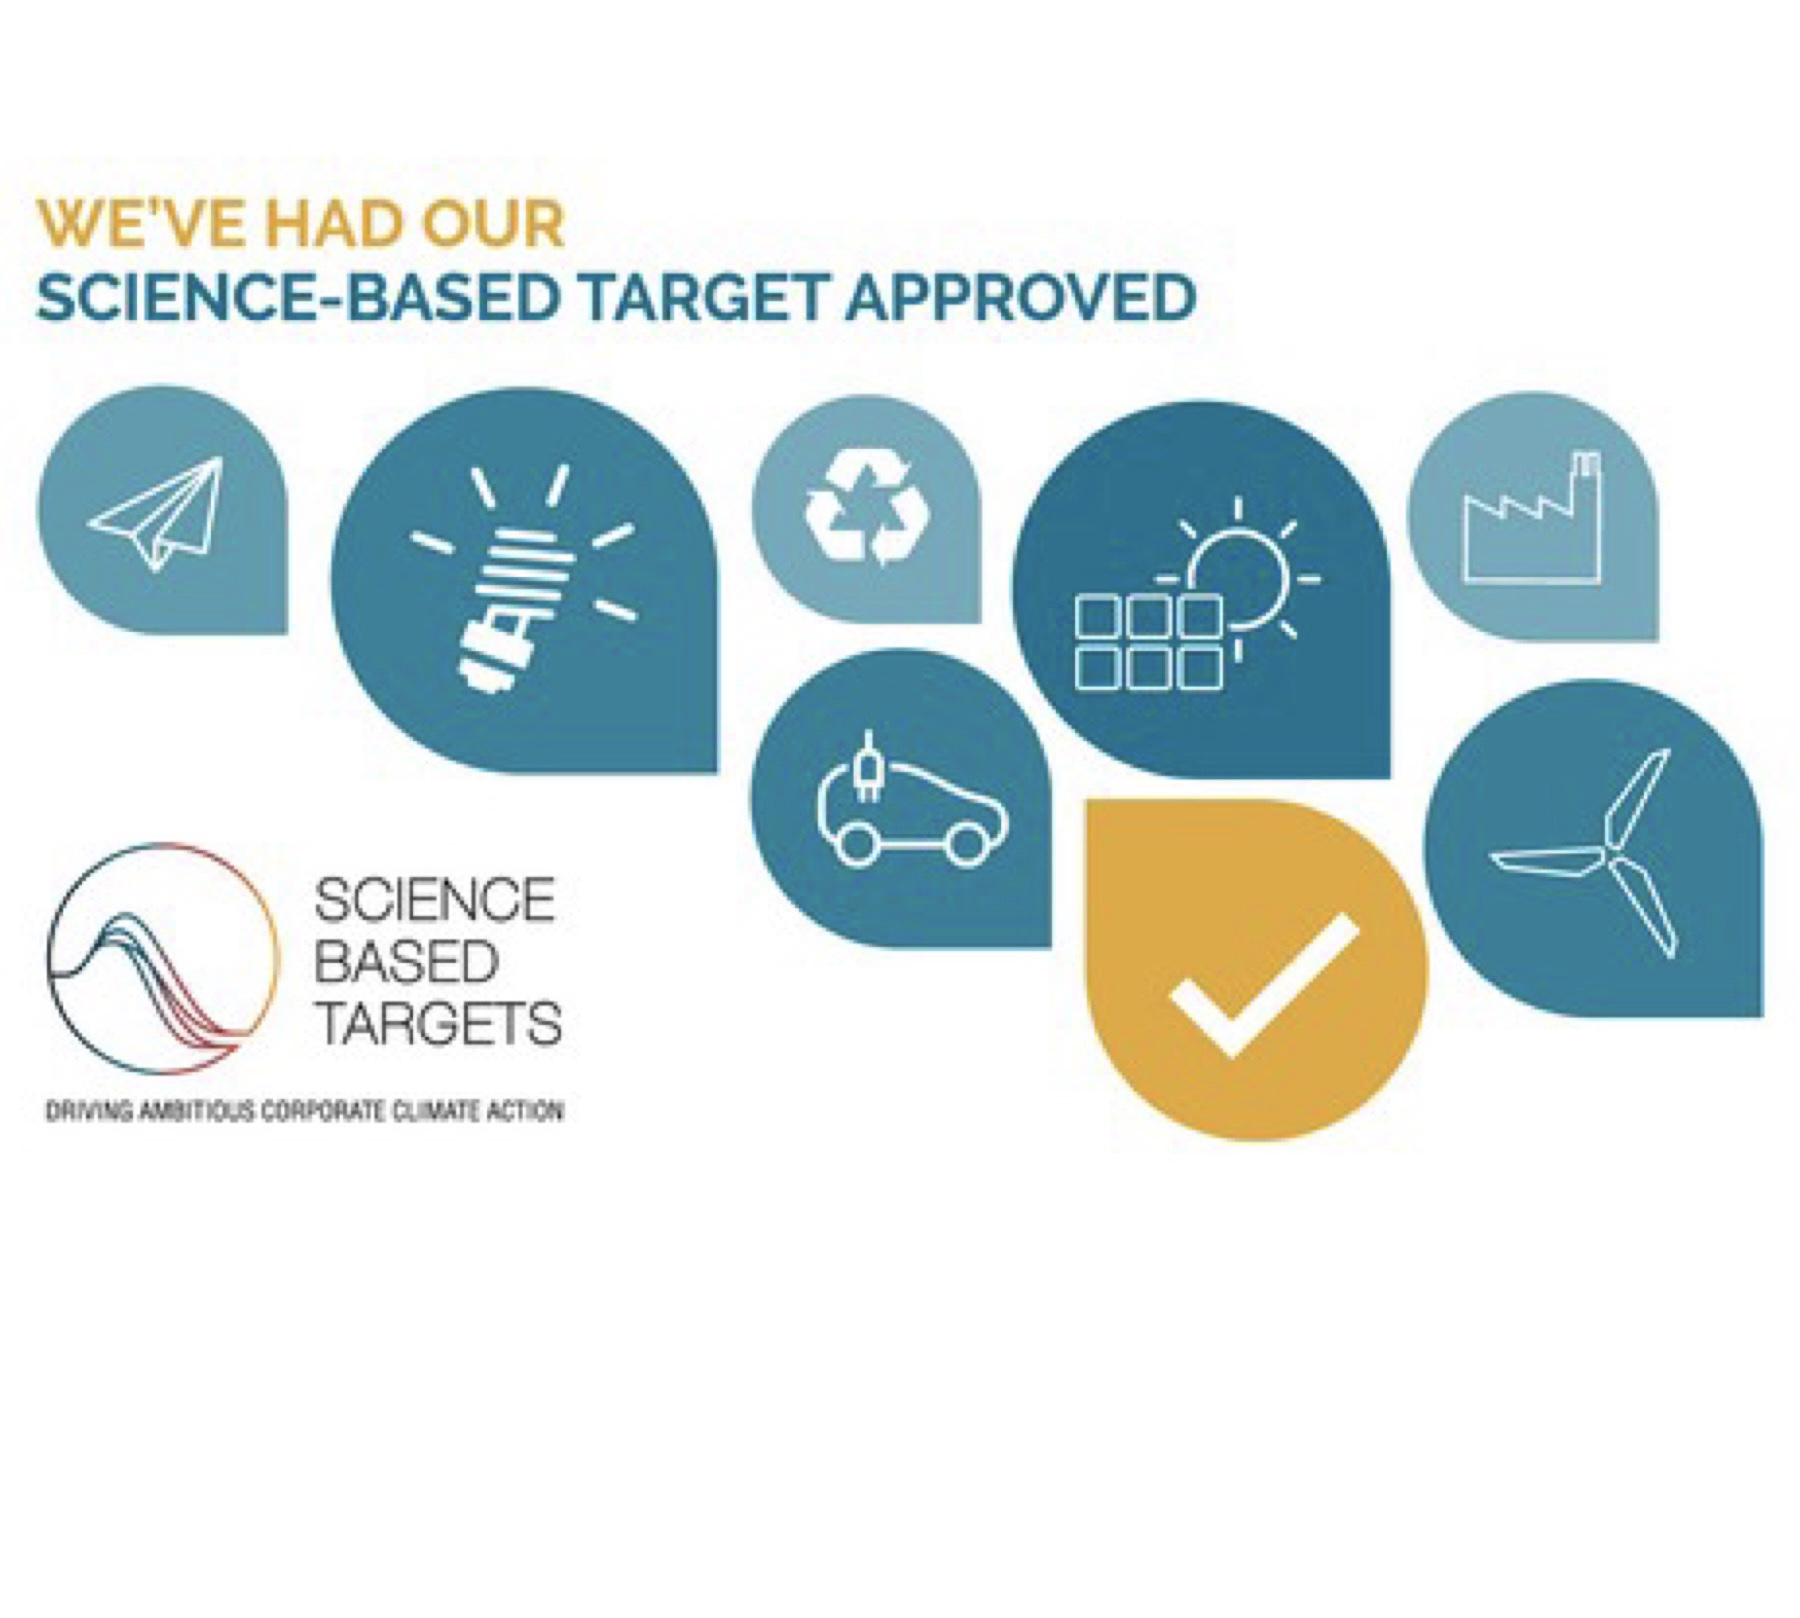 Nature's Pride and Berries Pride CO2 reduction targets acknowledged by Science Based TargetsInitiative